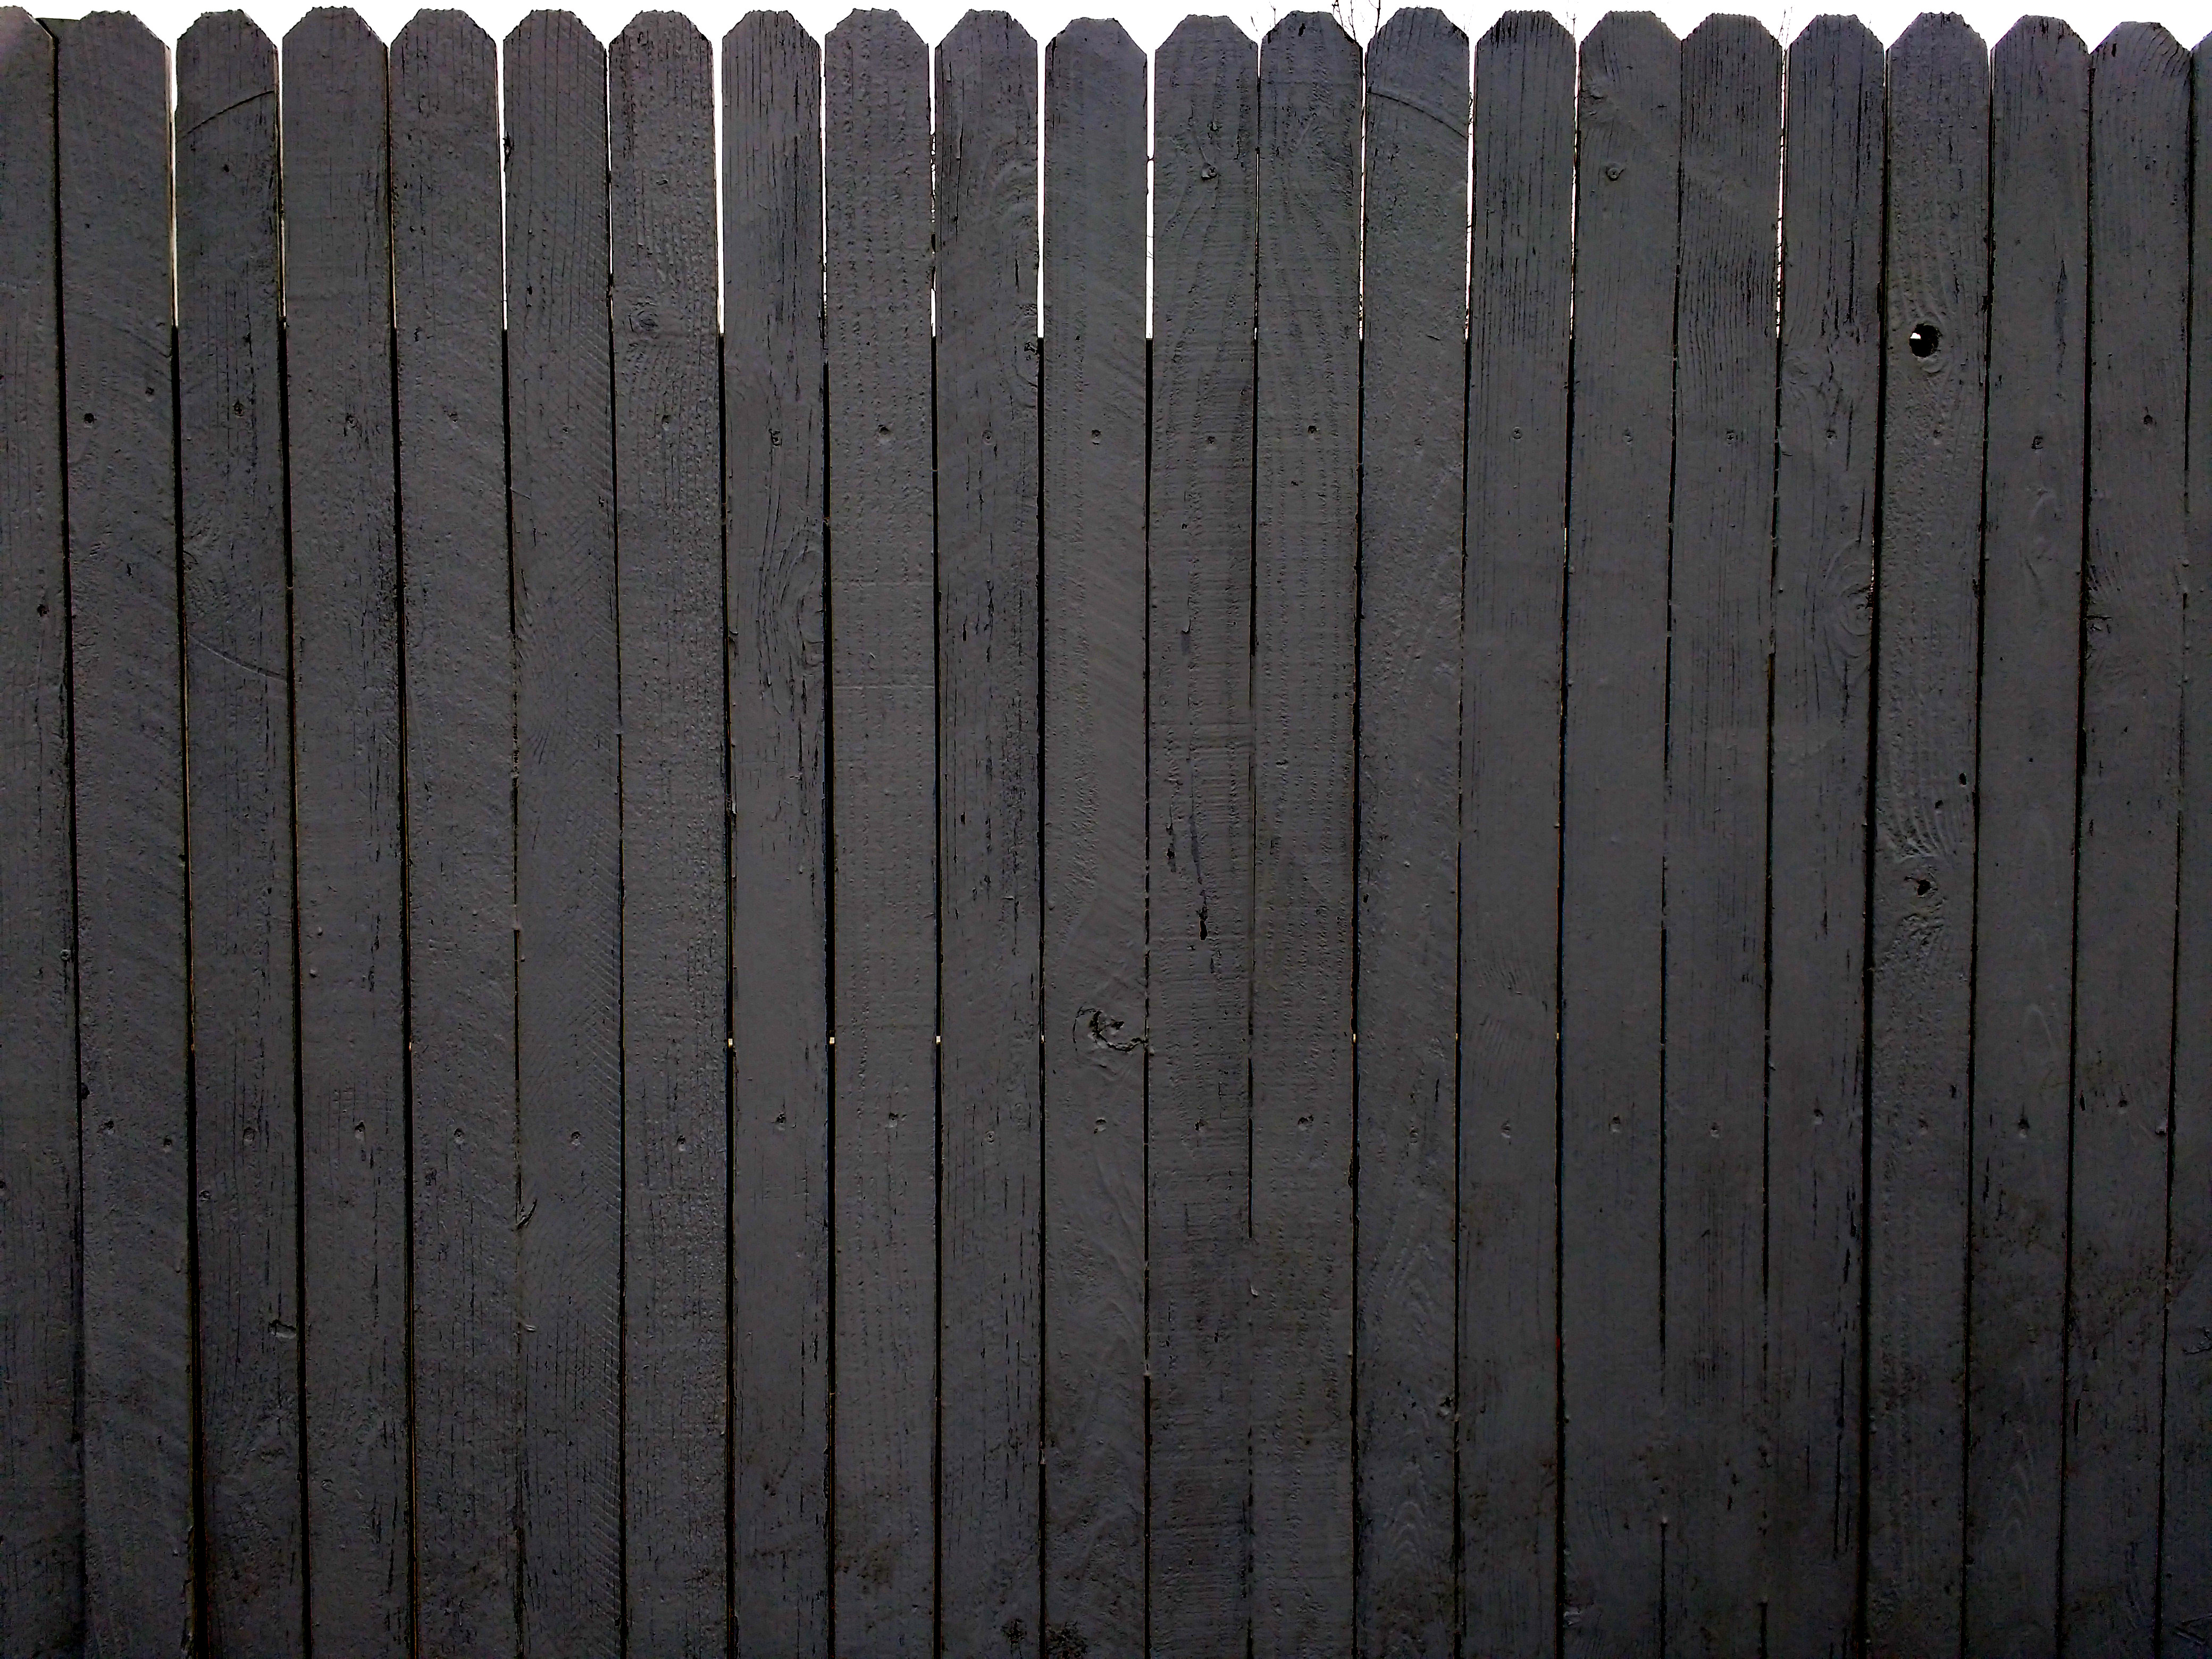 Charcoal Gray Painted Fence Texture Picture Free